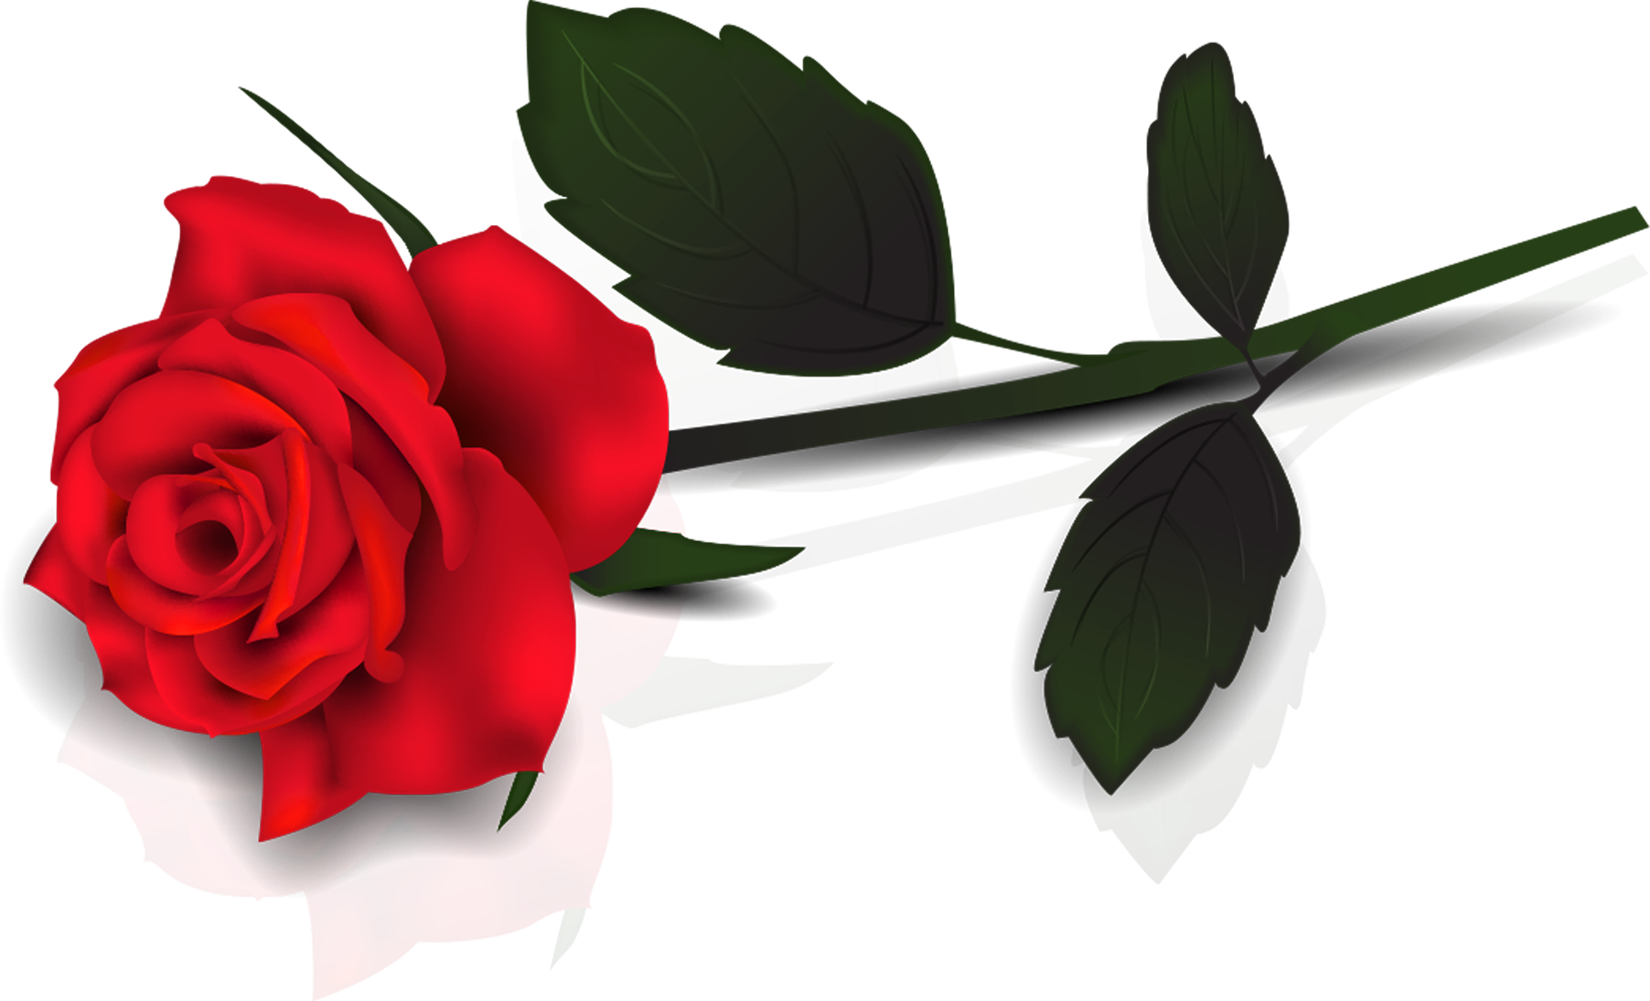 Single rose pictures clipart image library Pin by Ludmila Kolosovskaya on Flowers | Rose clipart ... image library